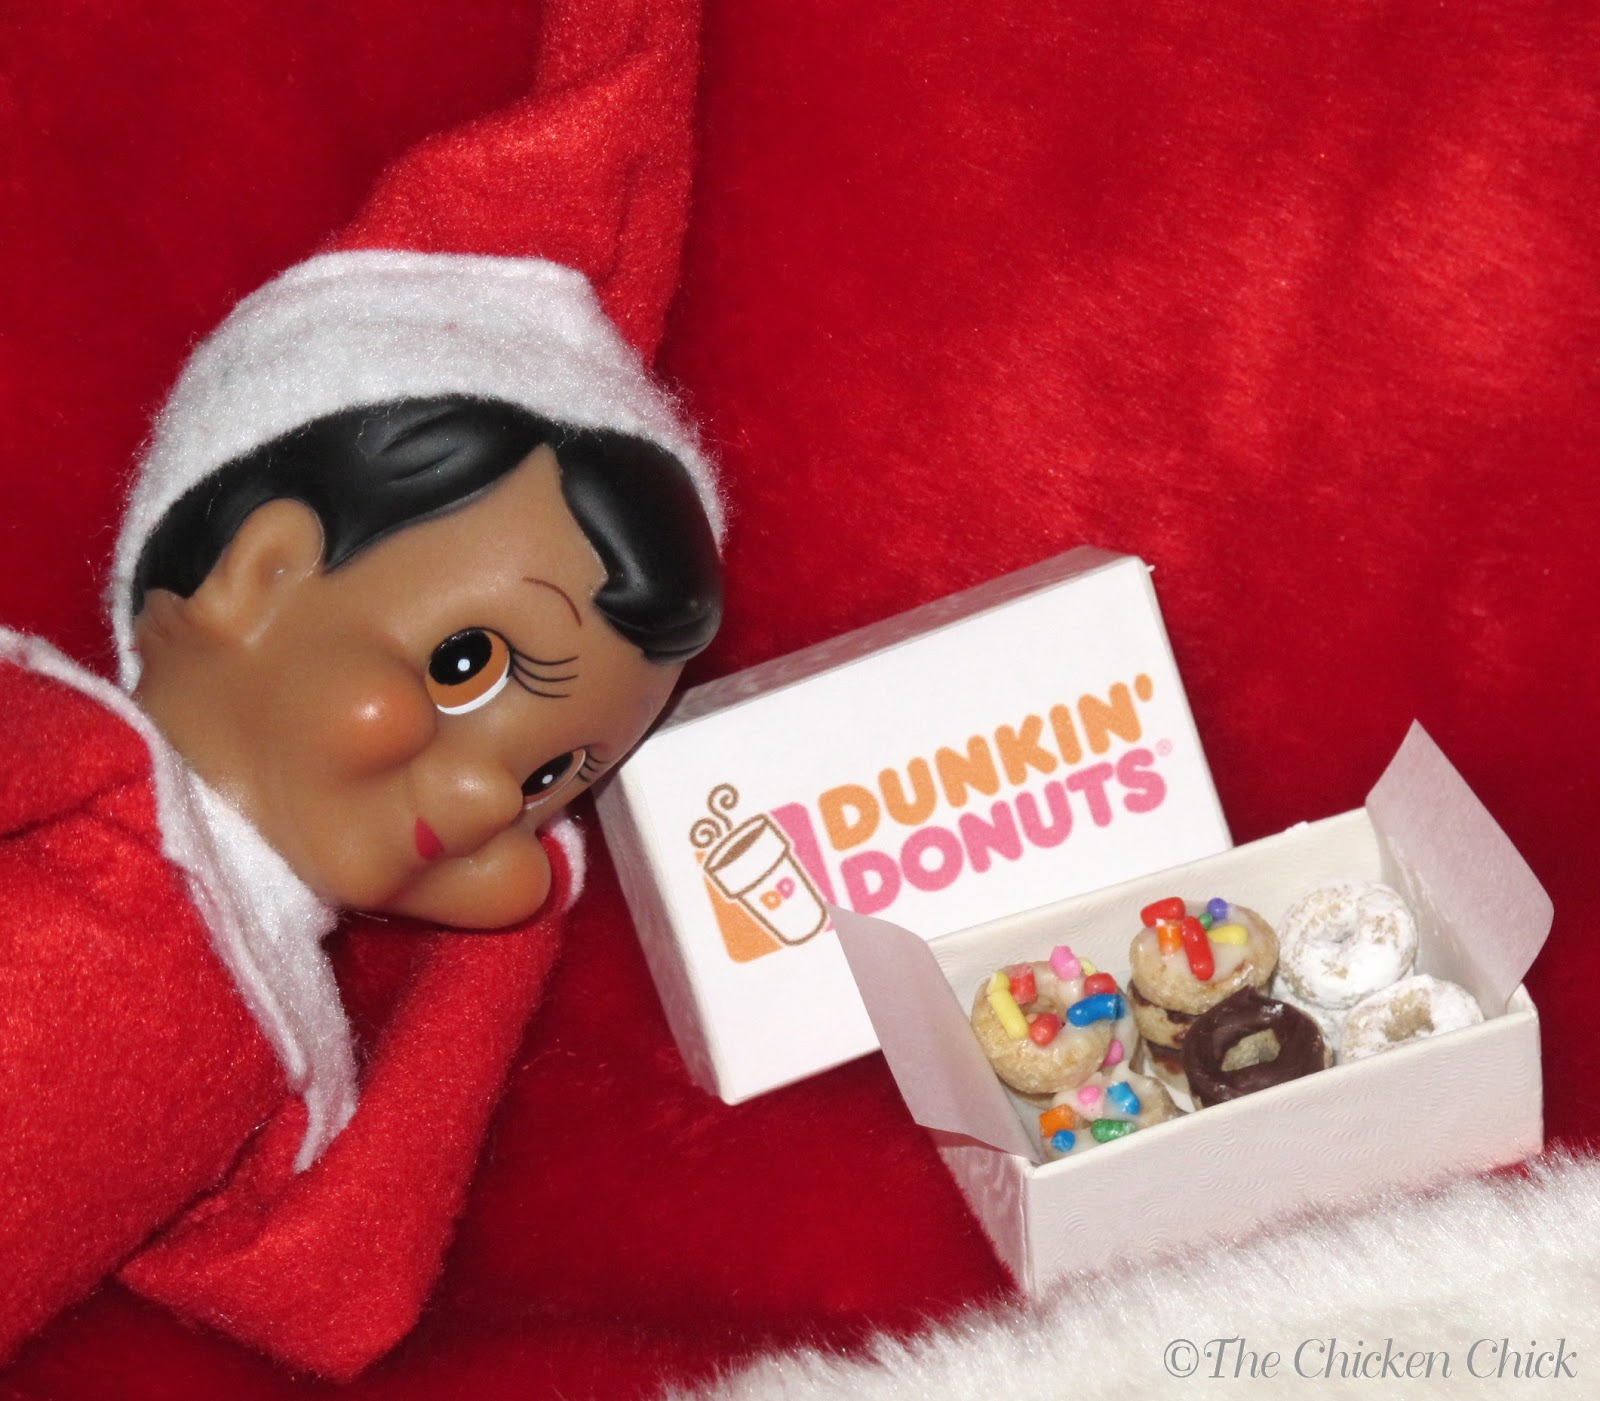 The Chicken Chick Elf on the Shelf Donuts